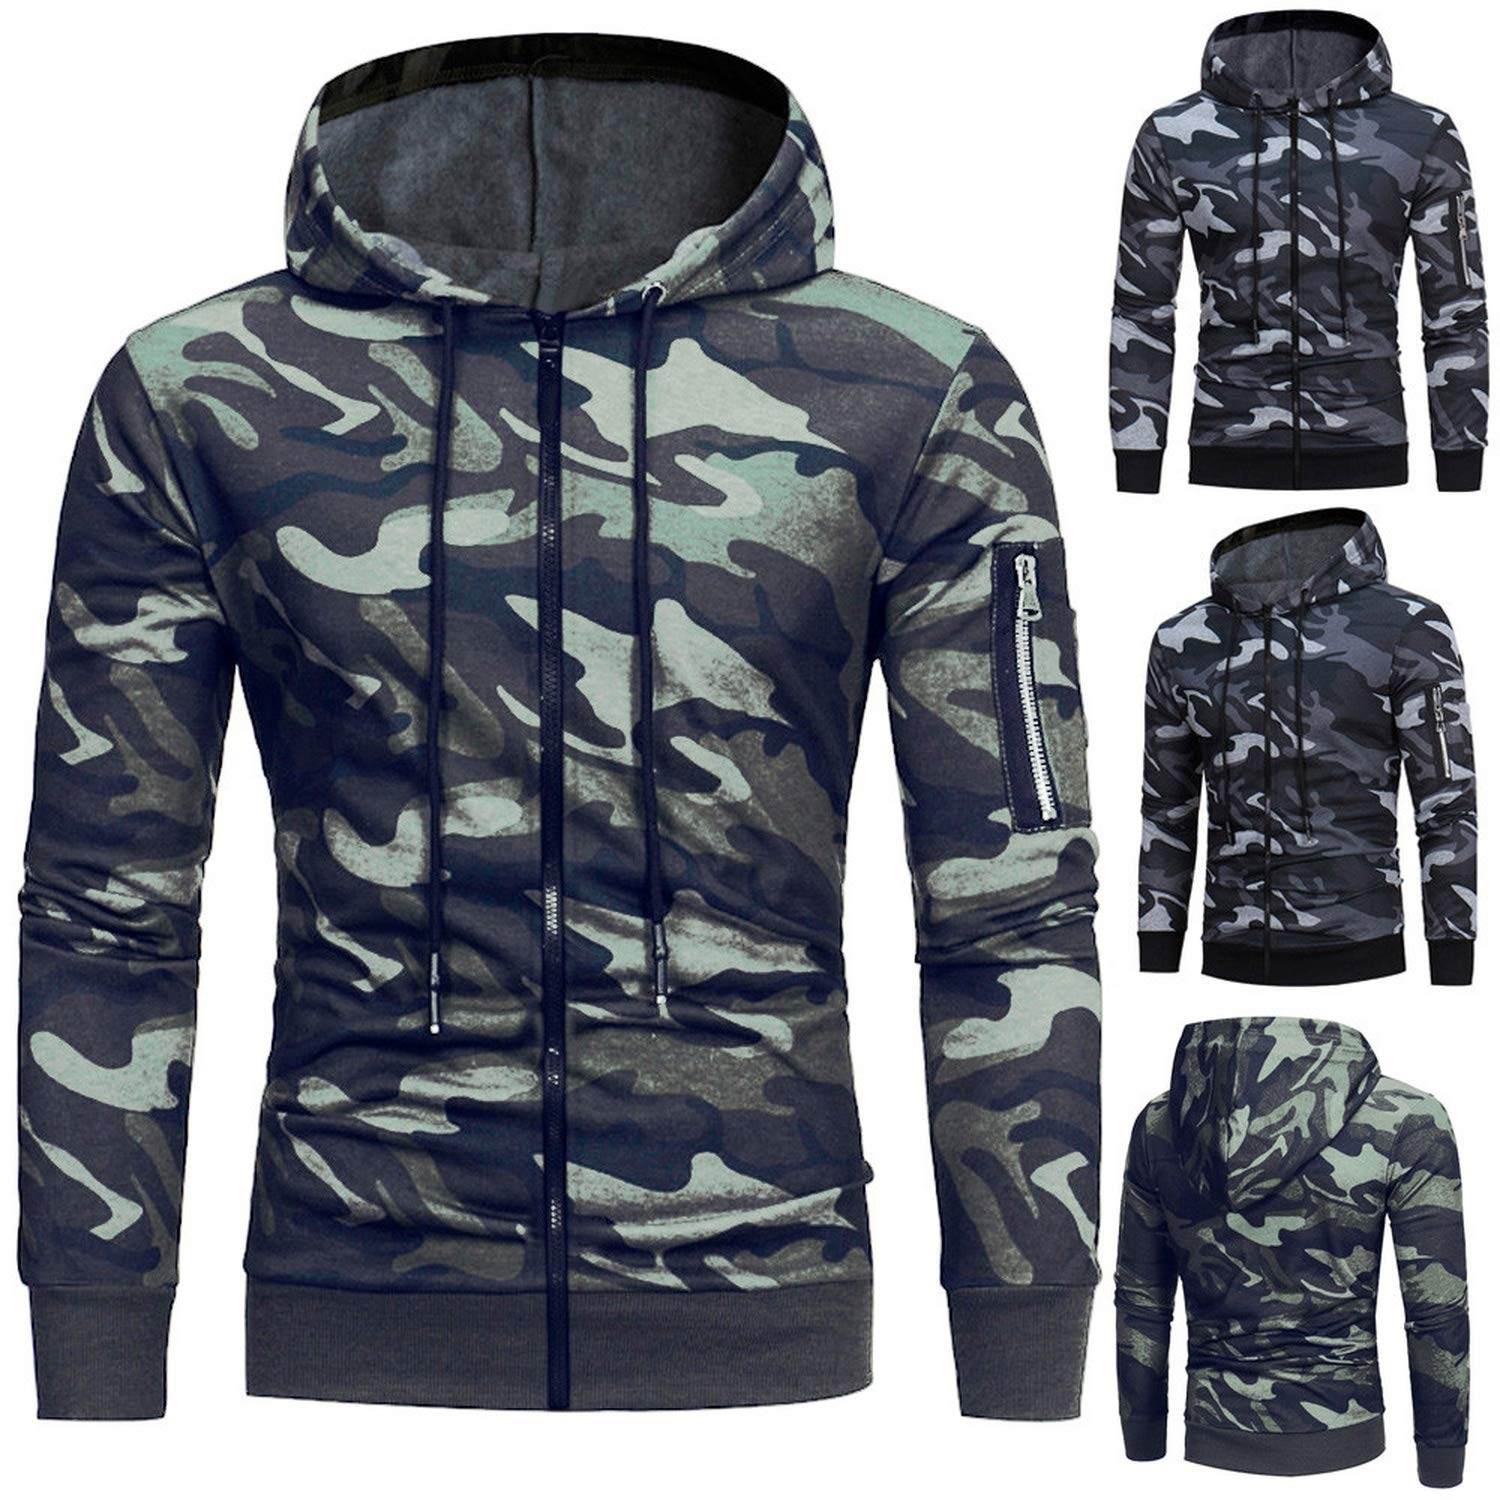 Hoodie Sweatshirt Long Sleeve Camouflage Tops Coat Outwear Fashion Hoodies,Gray,M,China